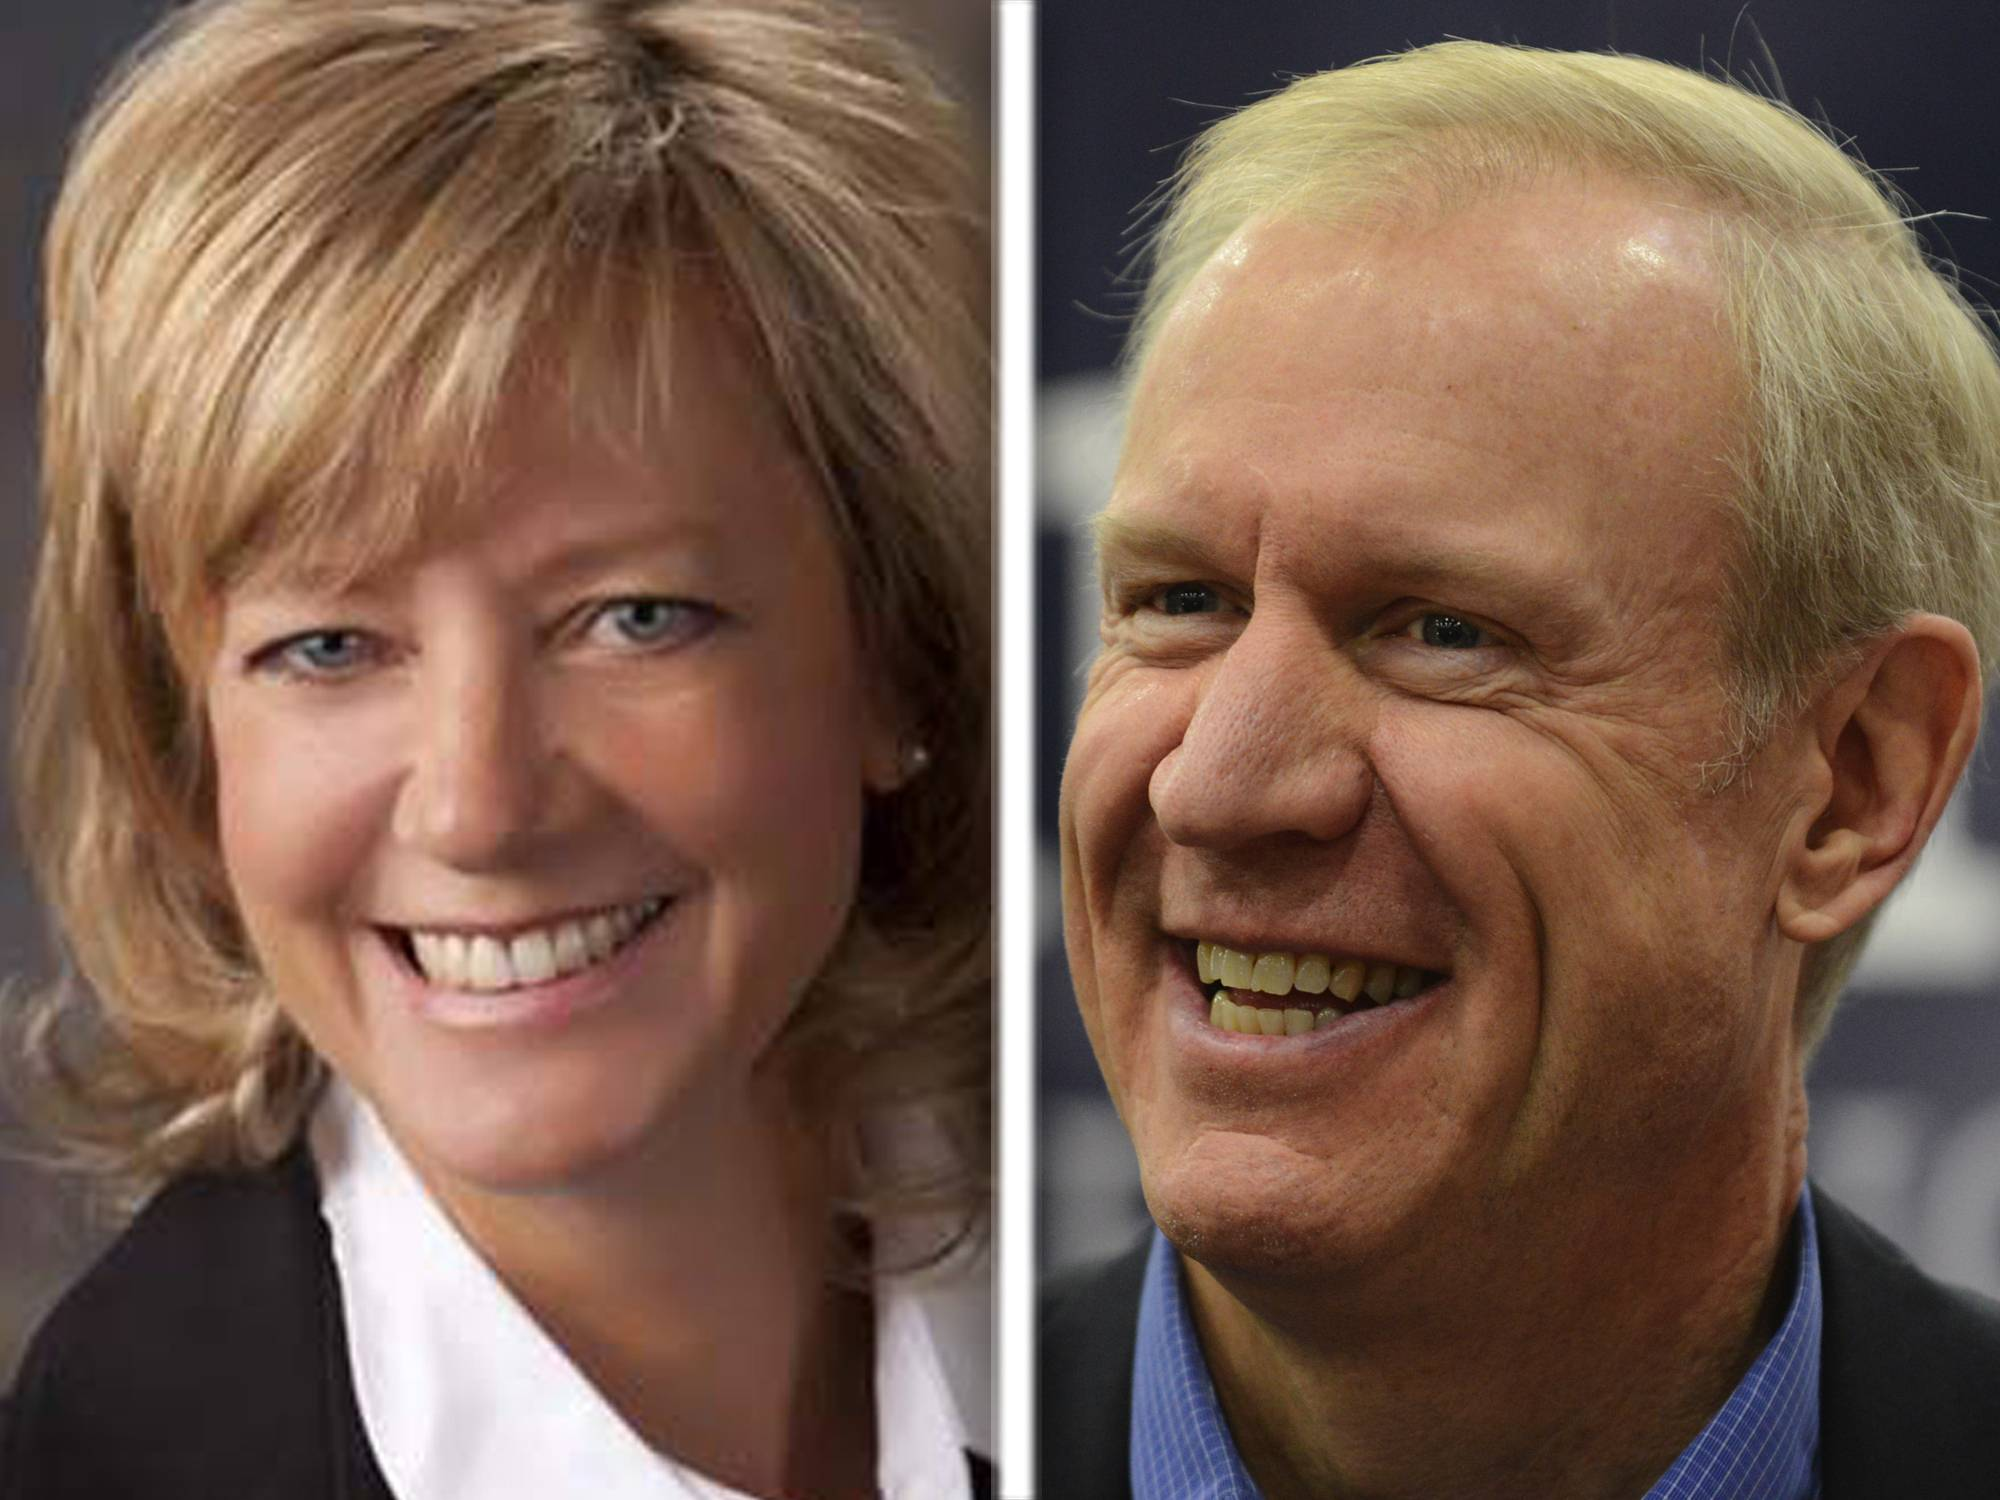 Win or lose in Republican primary, Ives helps push Illinois to the right